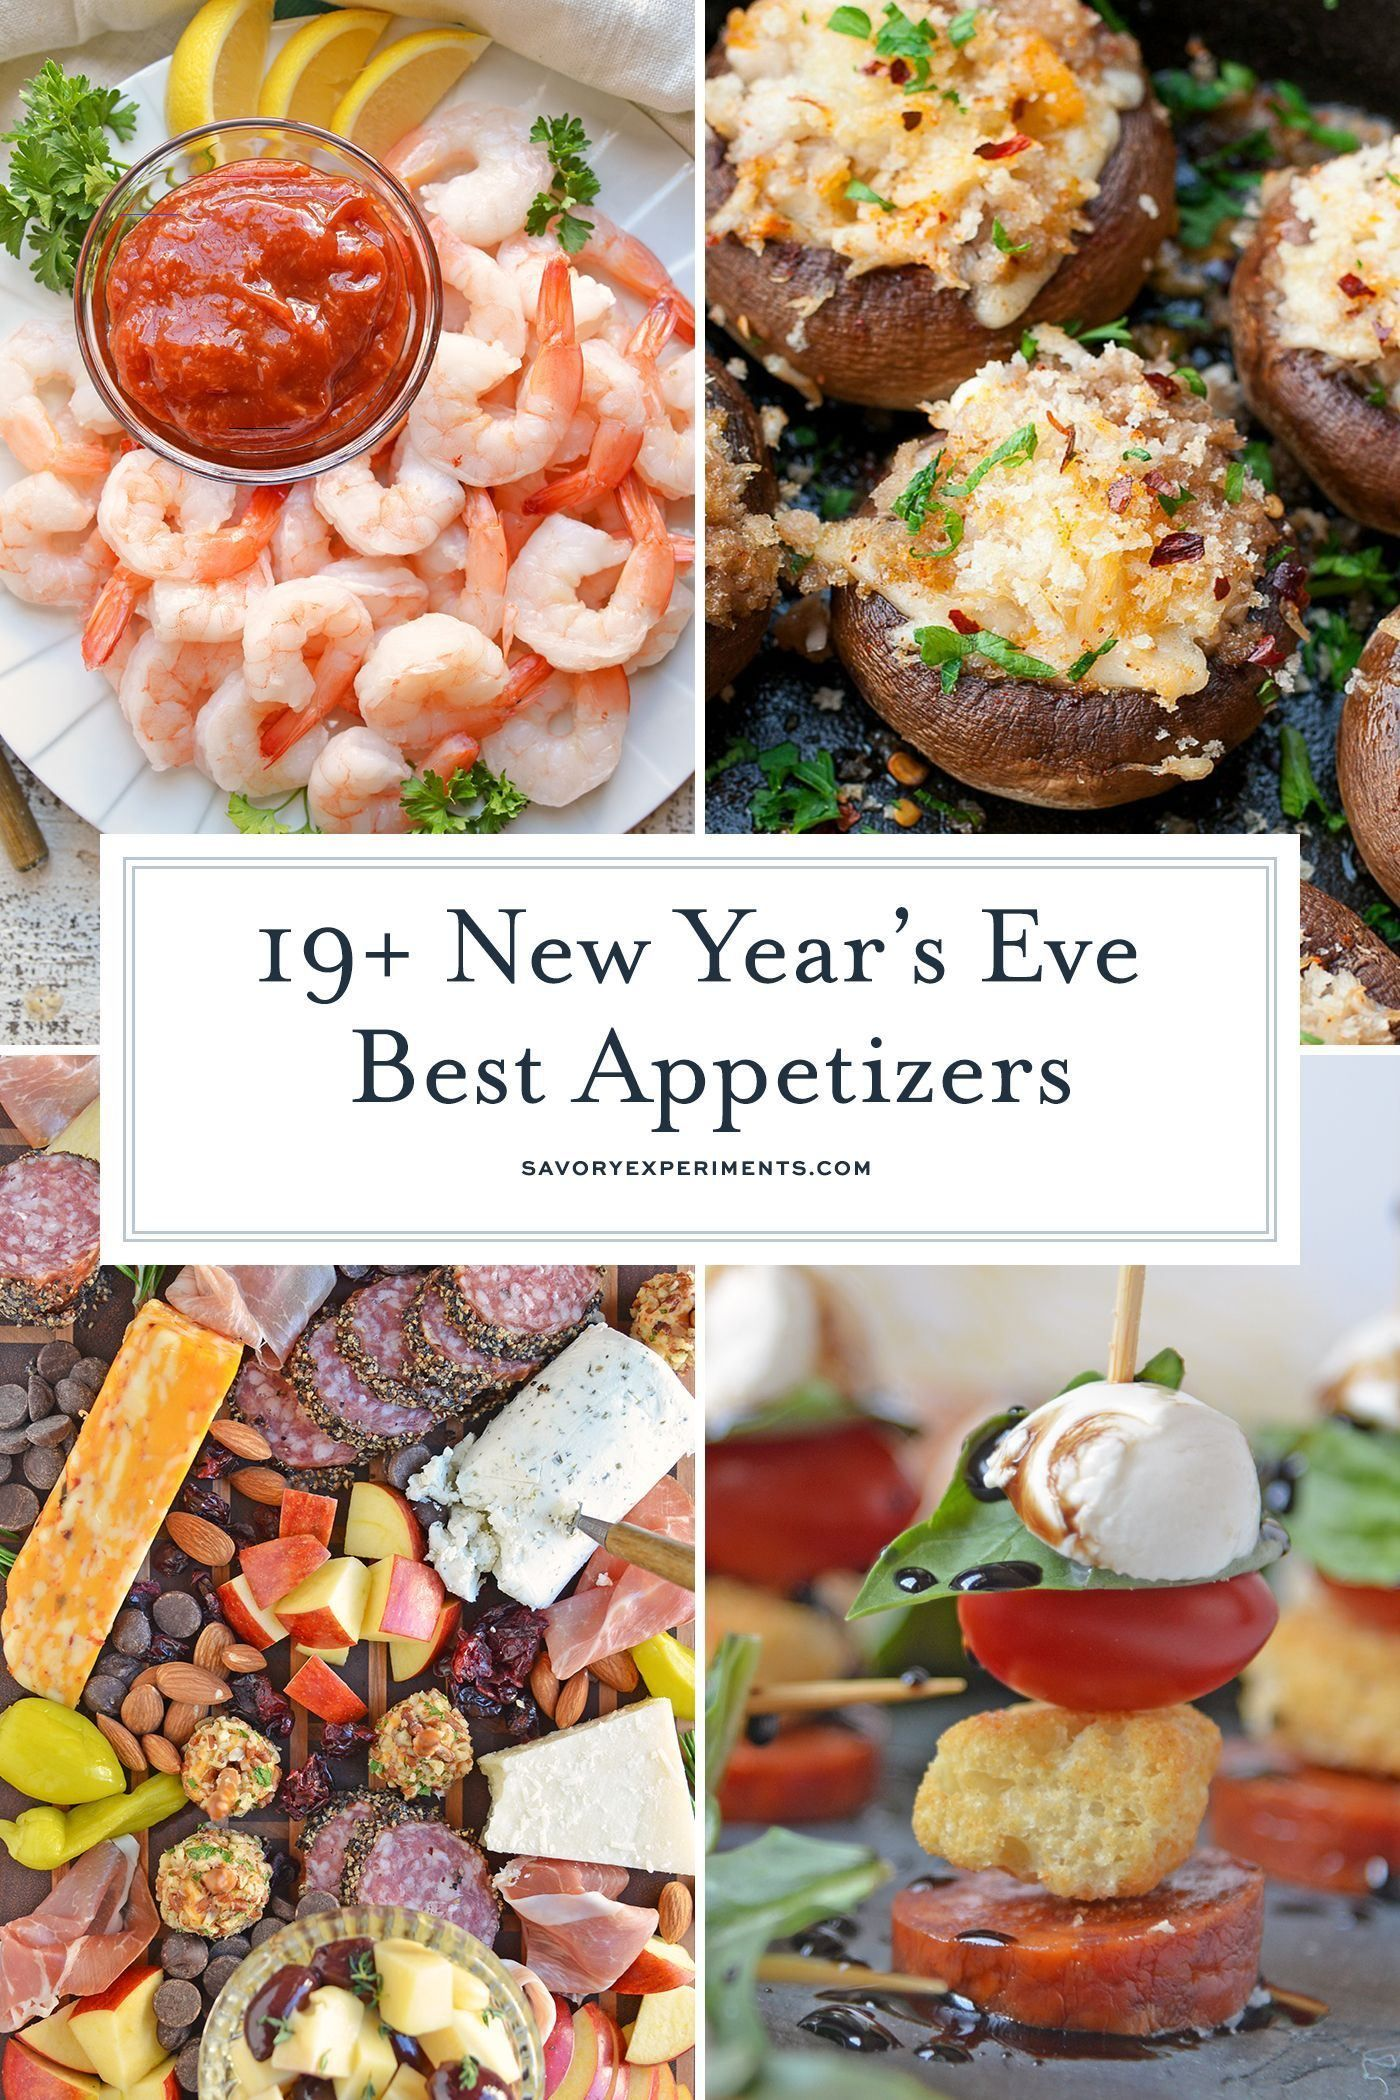 newyearsevefood in 2020 New year's eve appetizers, New